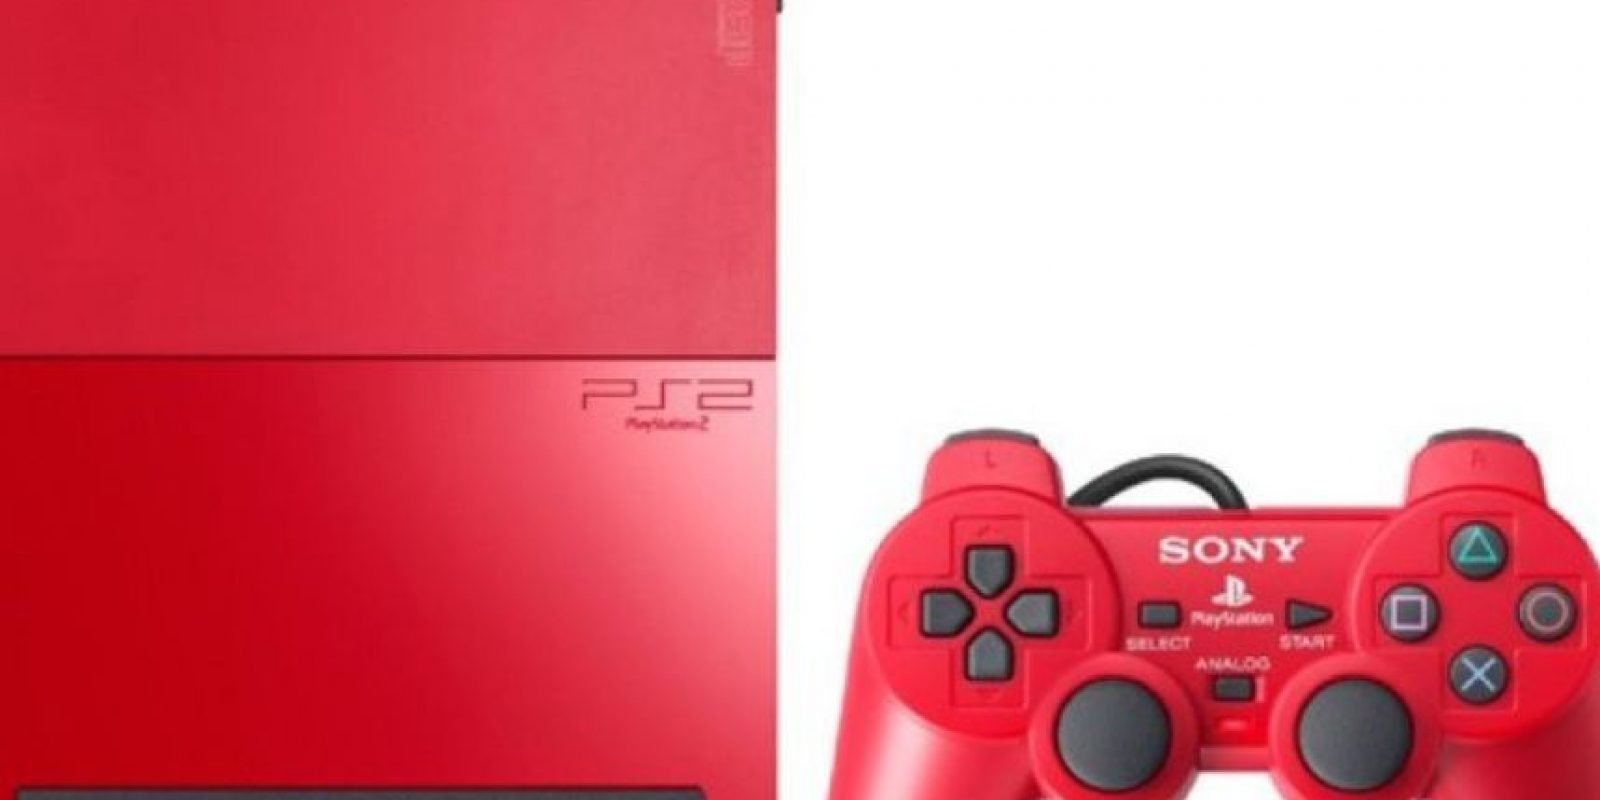 PlayStation 2 Slim rojo Foto: SONY